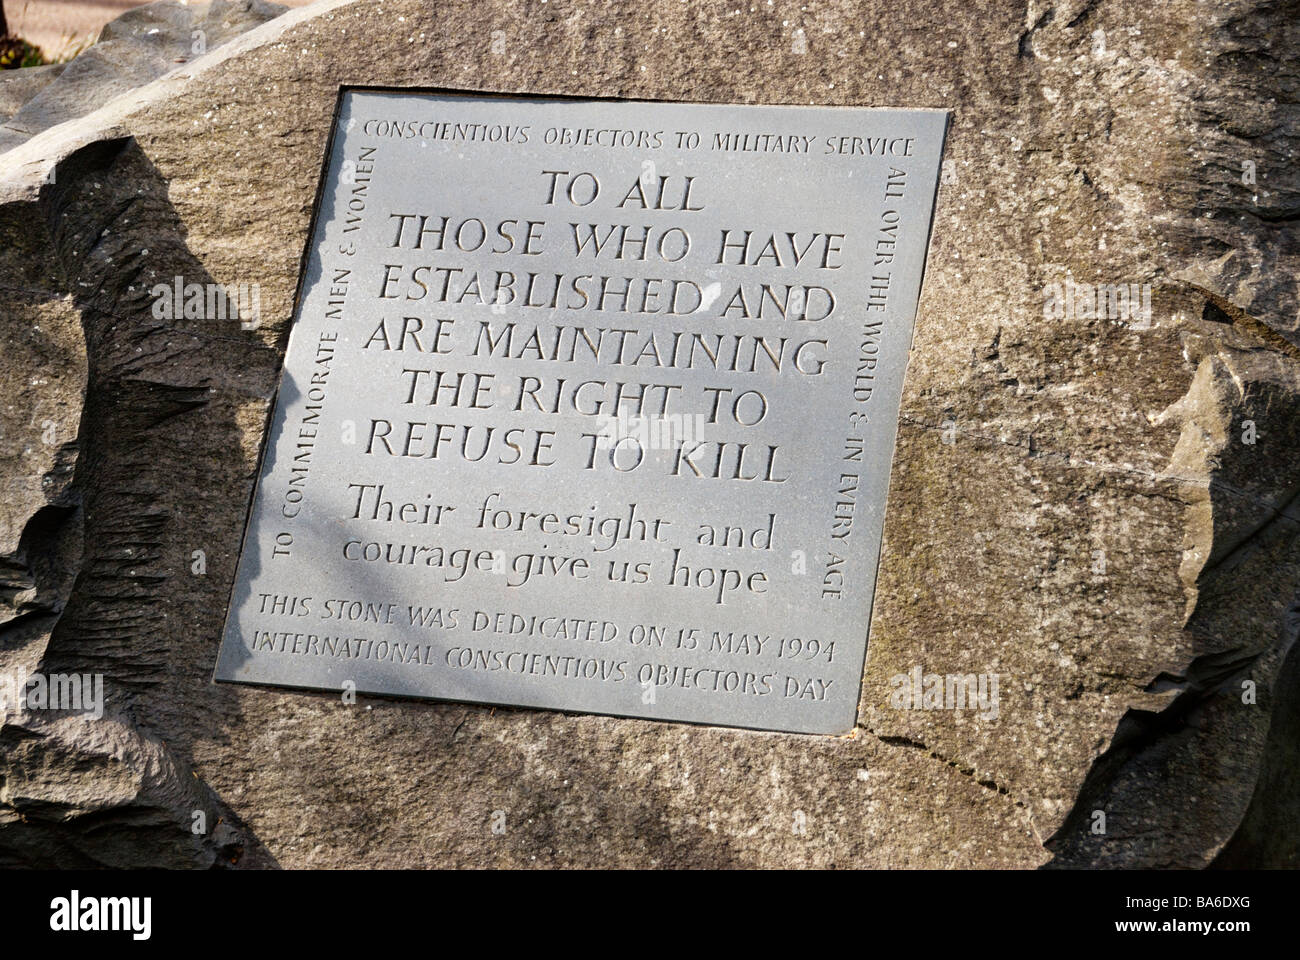 Conscientious Objector memorial plaque on stone in Tavistock Square London. - Stock Image